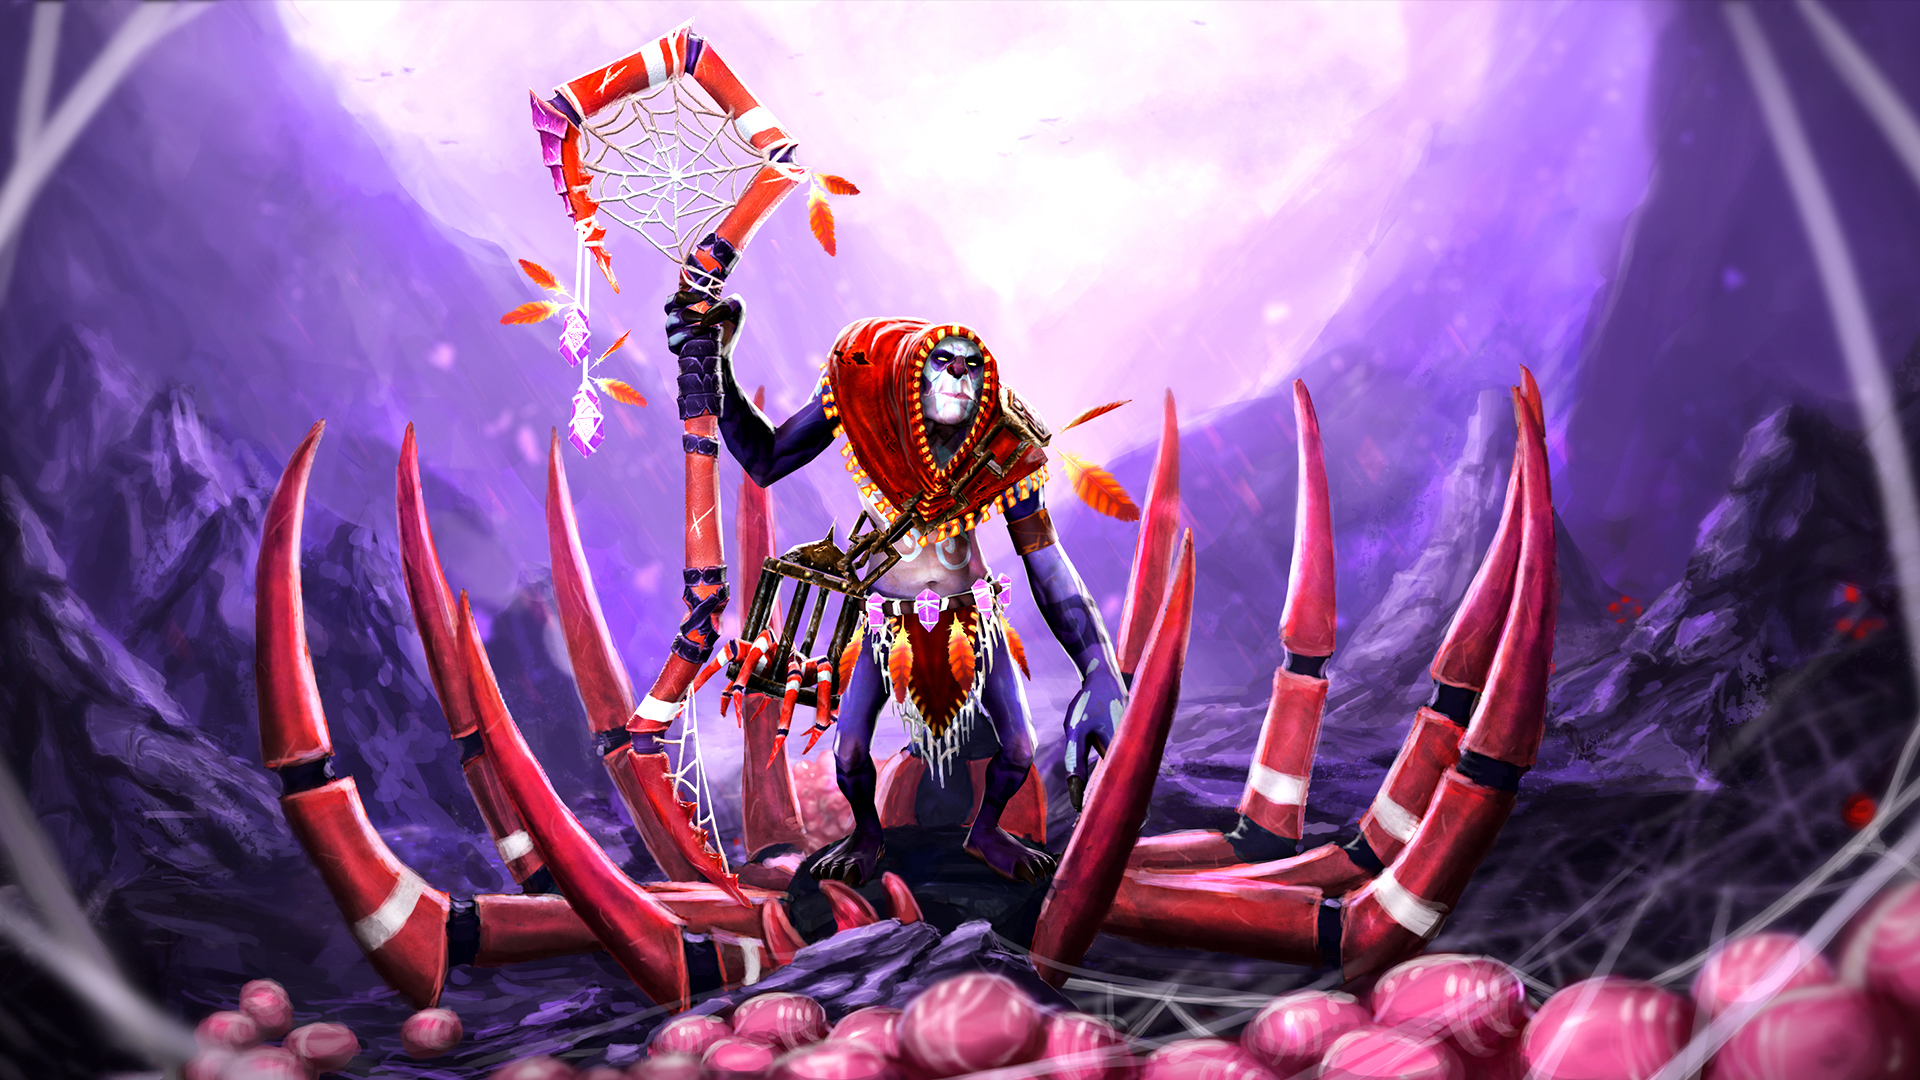 Images DOTA 2 Witch Doctor Mage Staff Monsters Fantasy 1920x1080